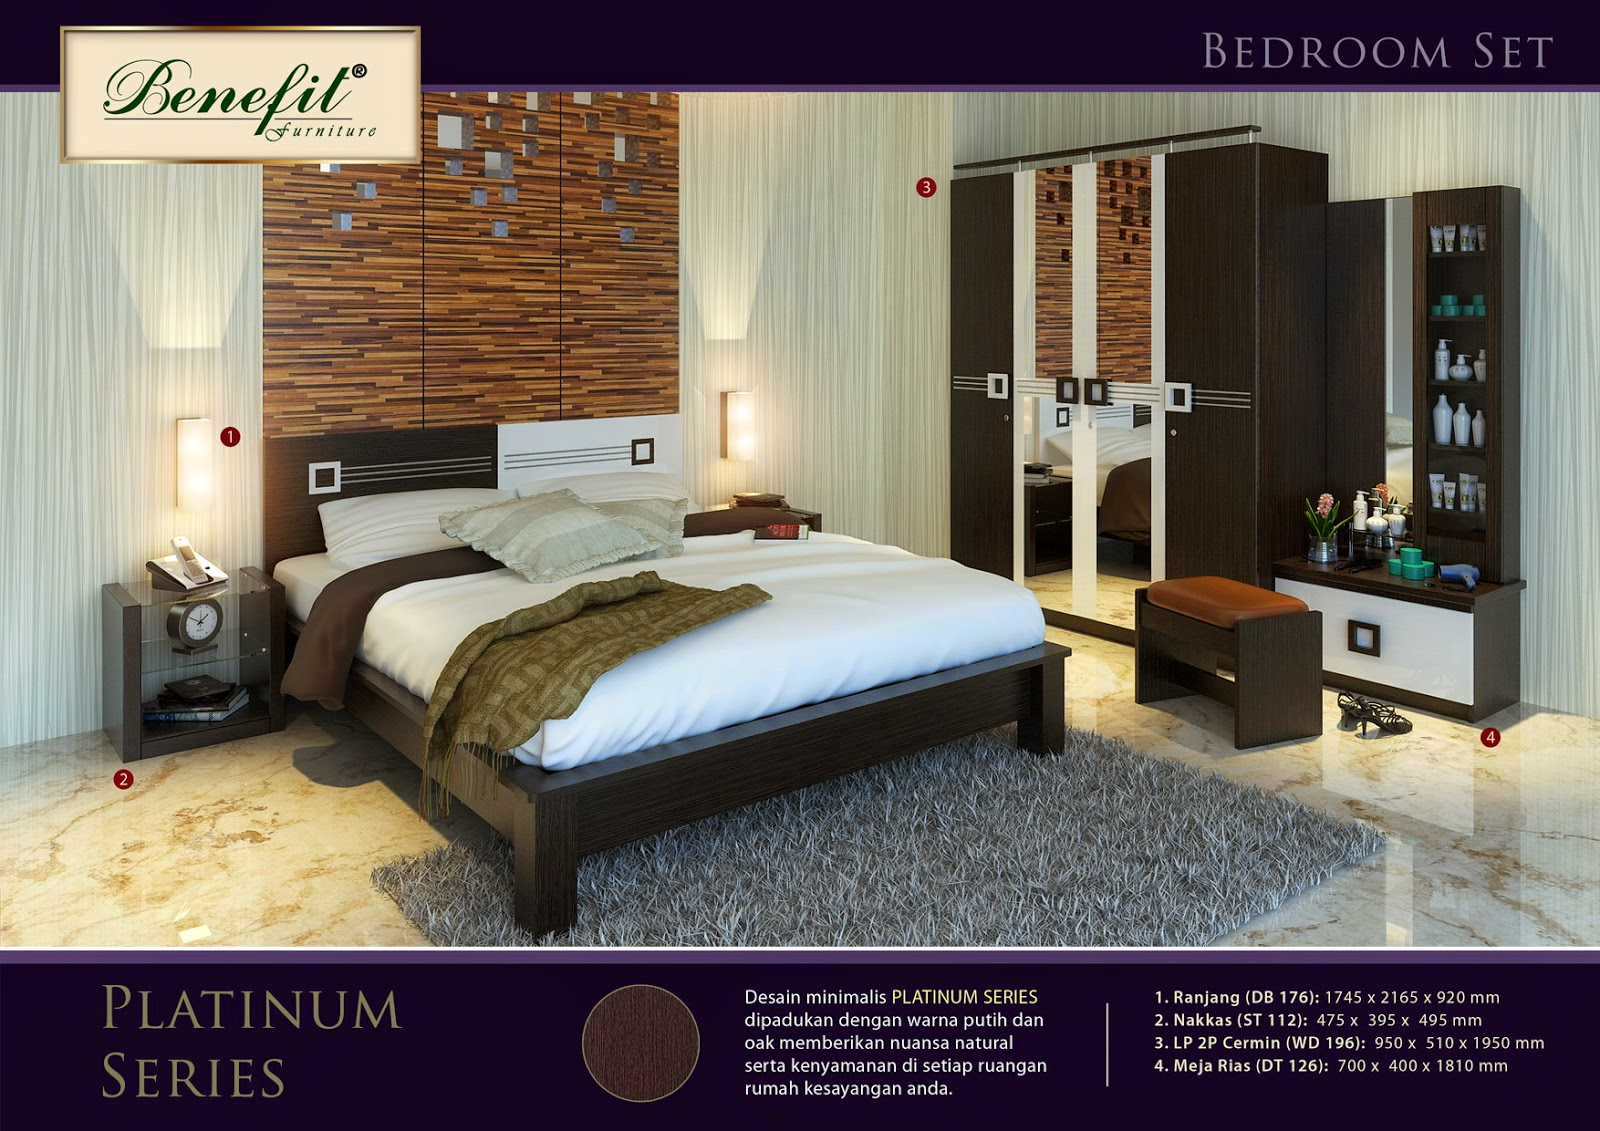 http://www.lemarionline.com/2013/12/bedroom-set-platinum-series.html